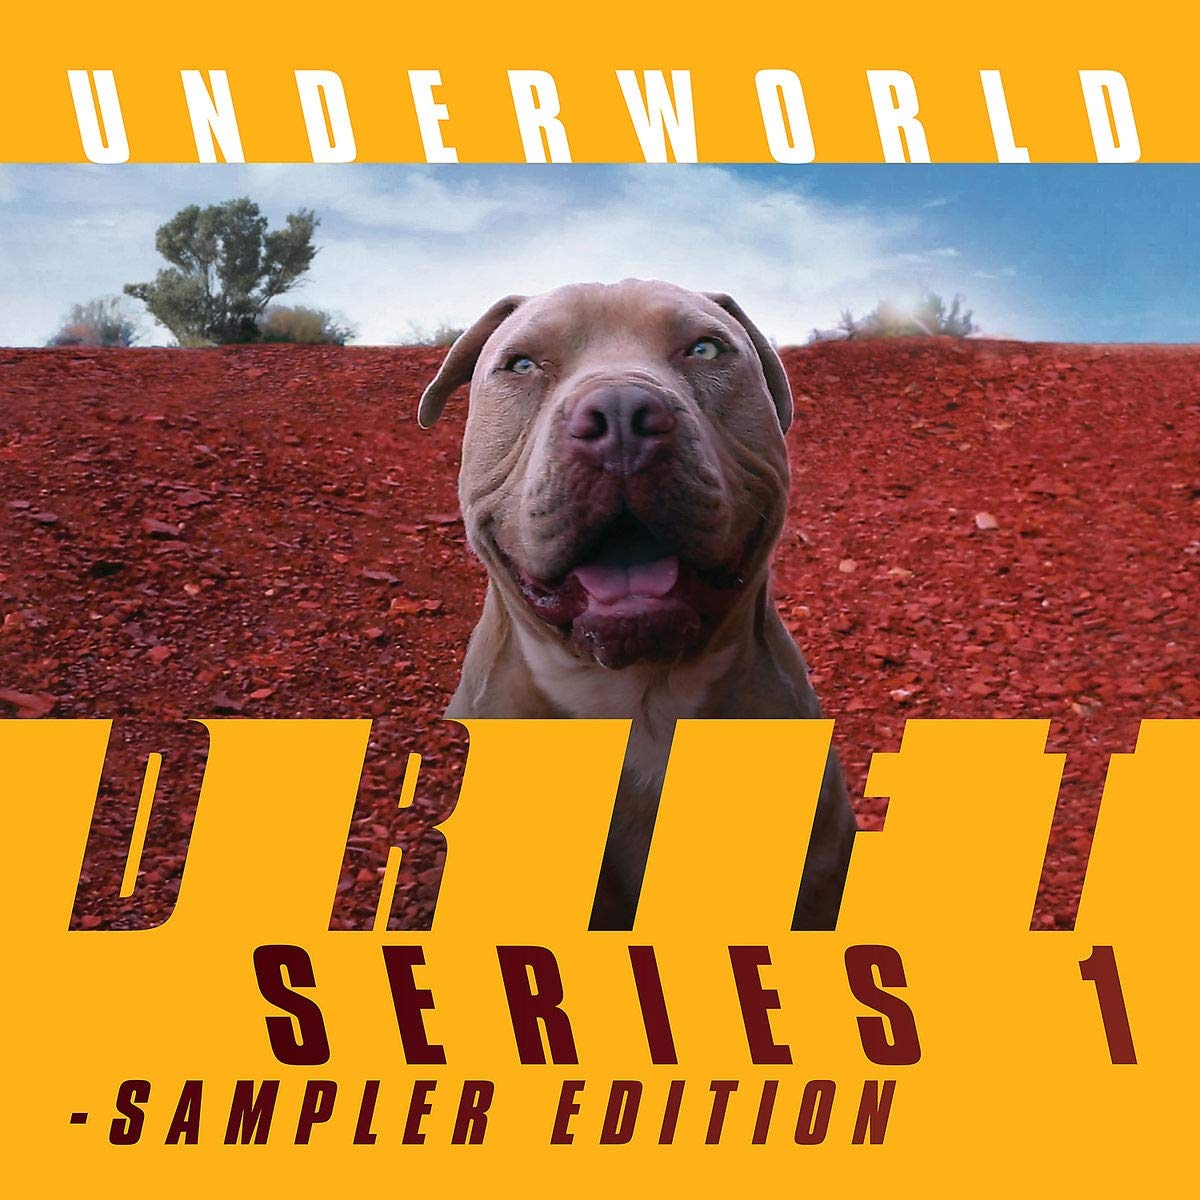 Drift Series 1 Sampler Édition: Underworld, Underworld: Amazon.fr ...